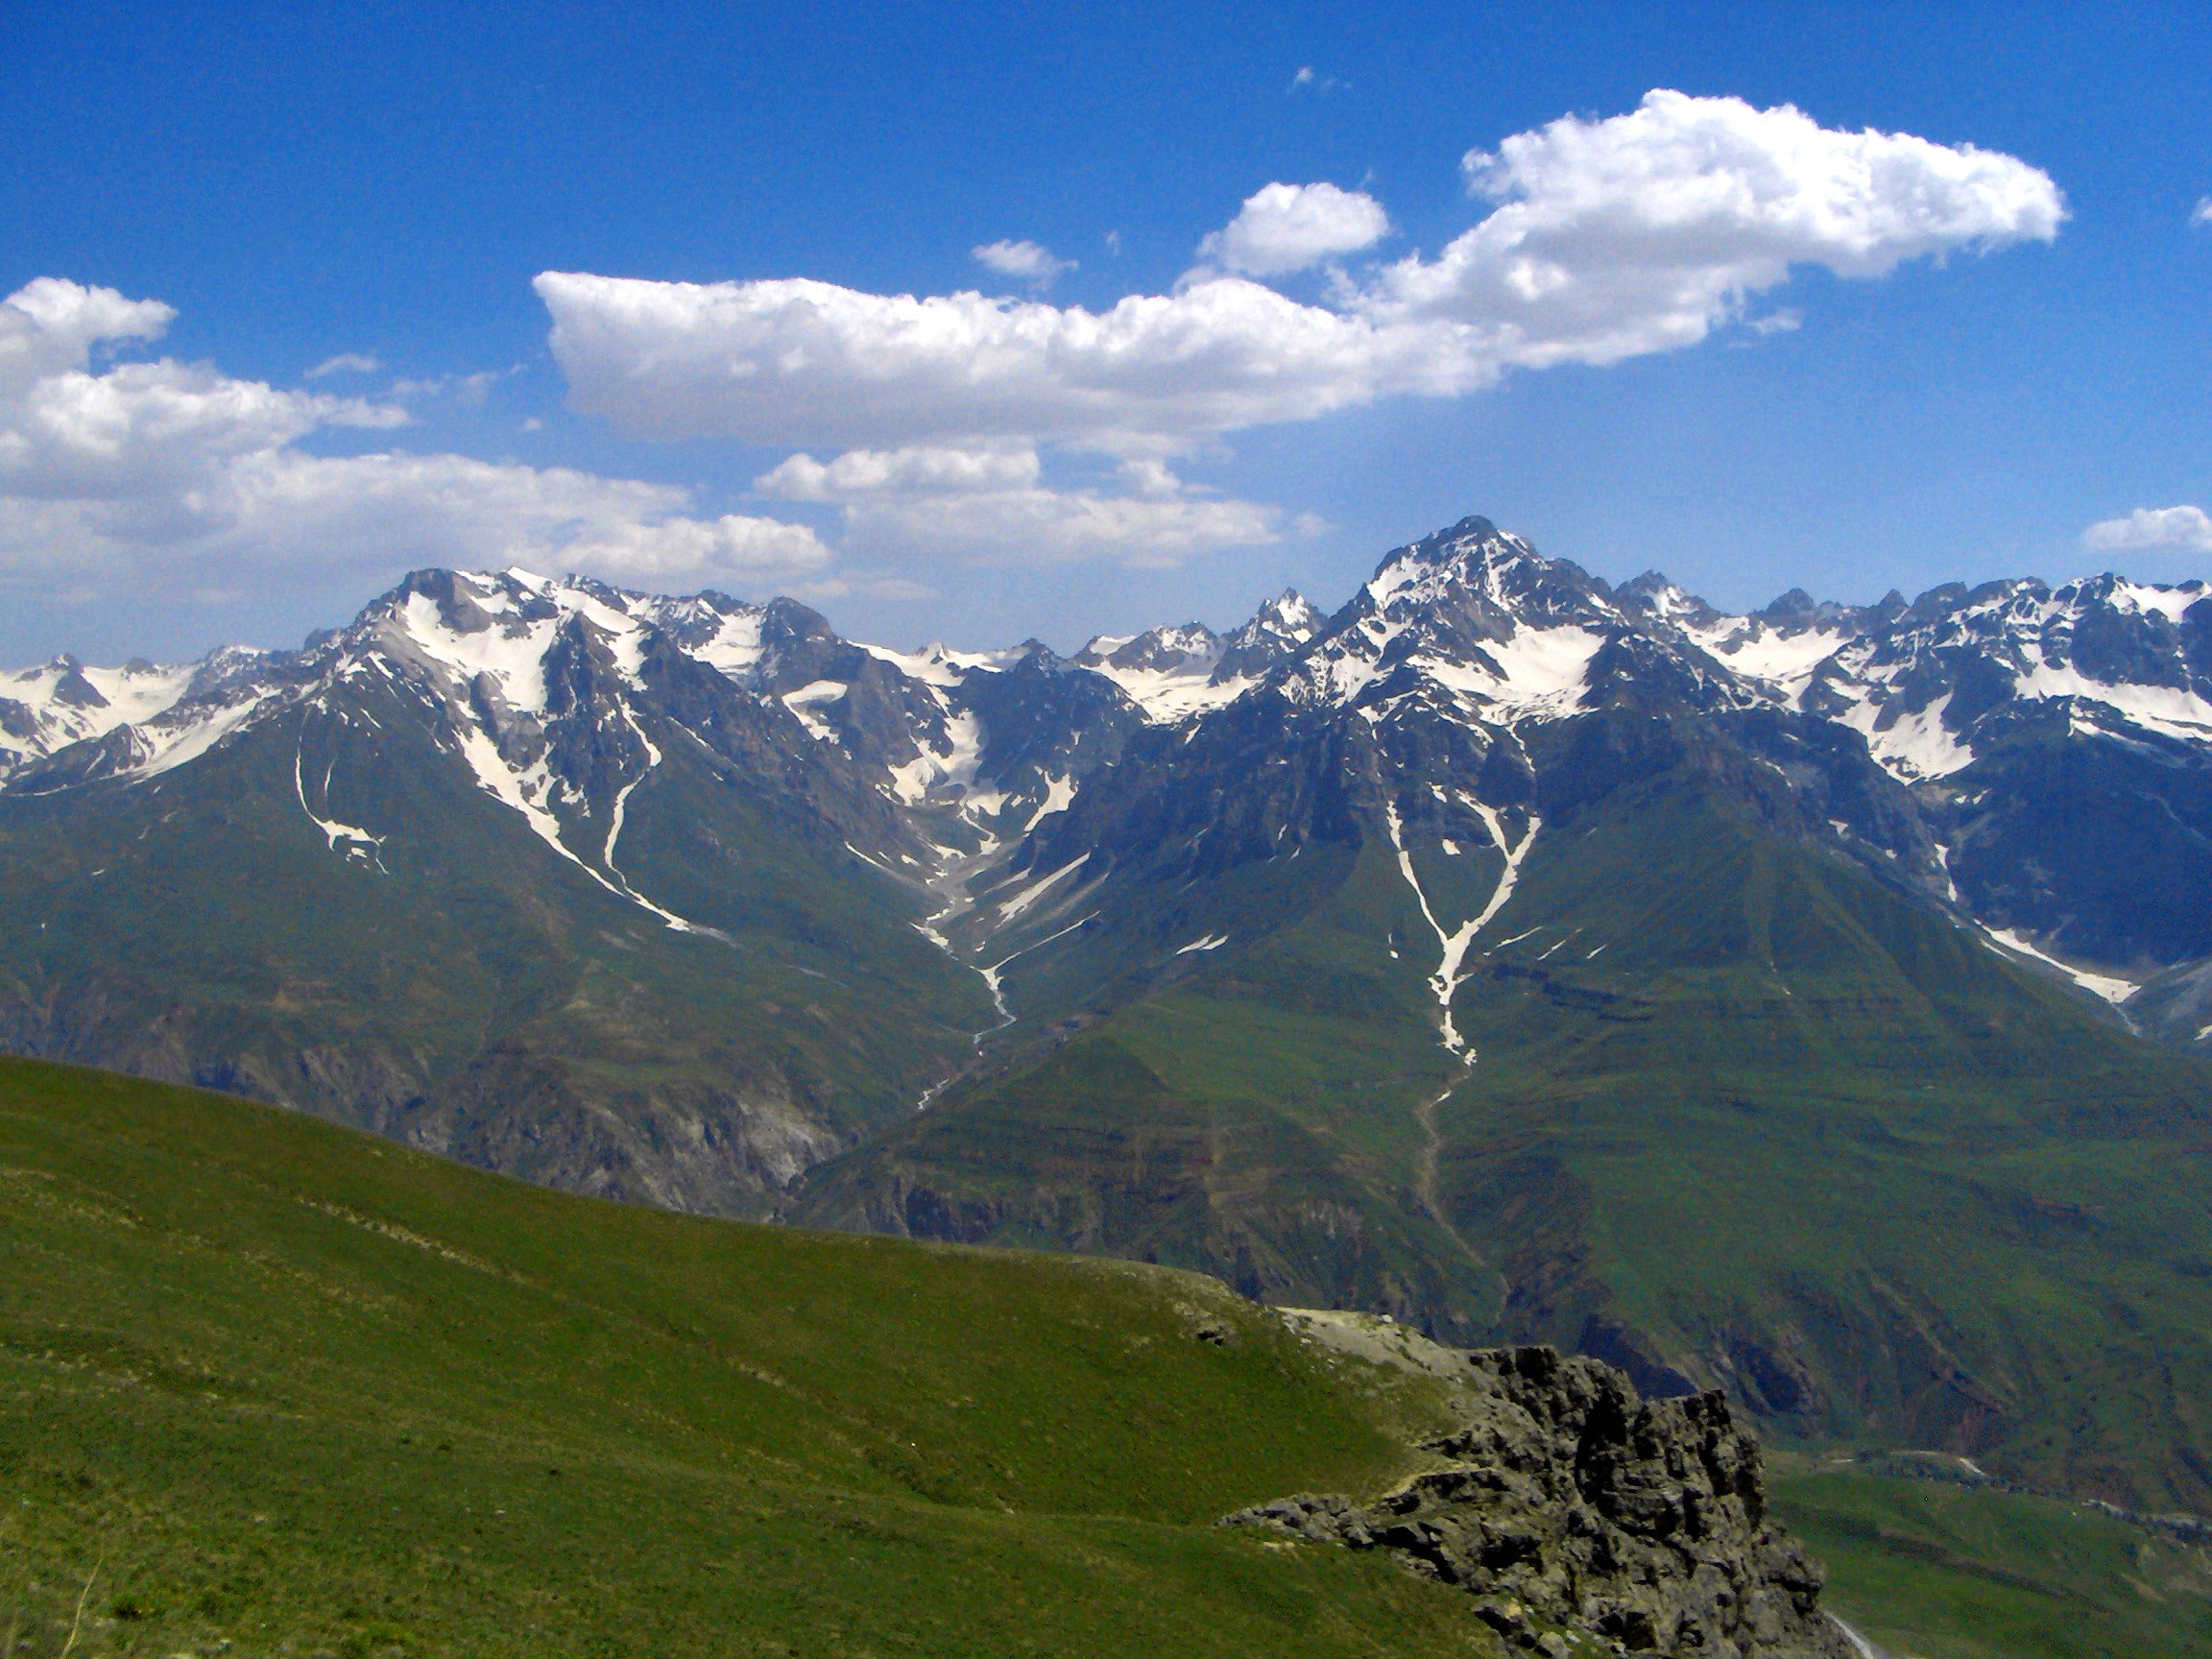 Description tajik mountains edit